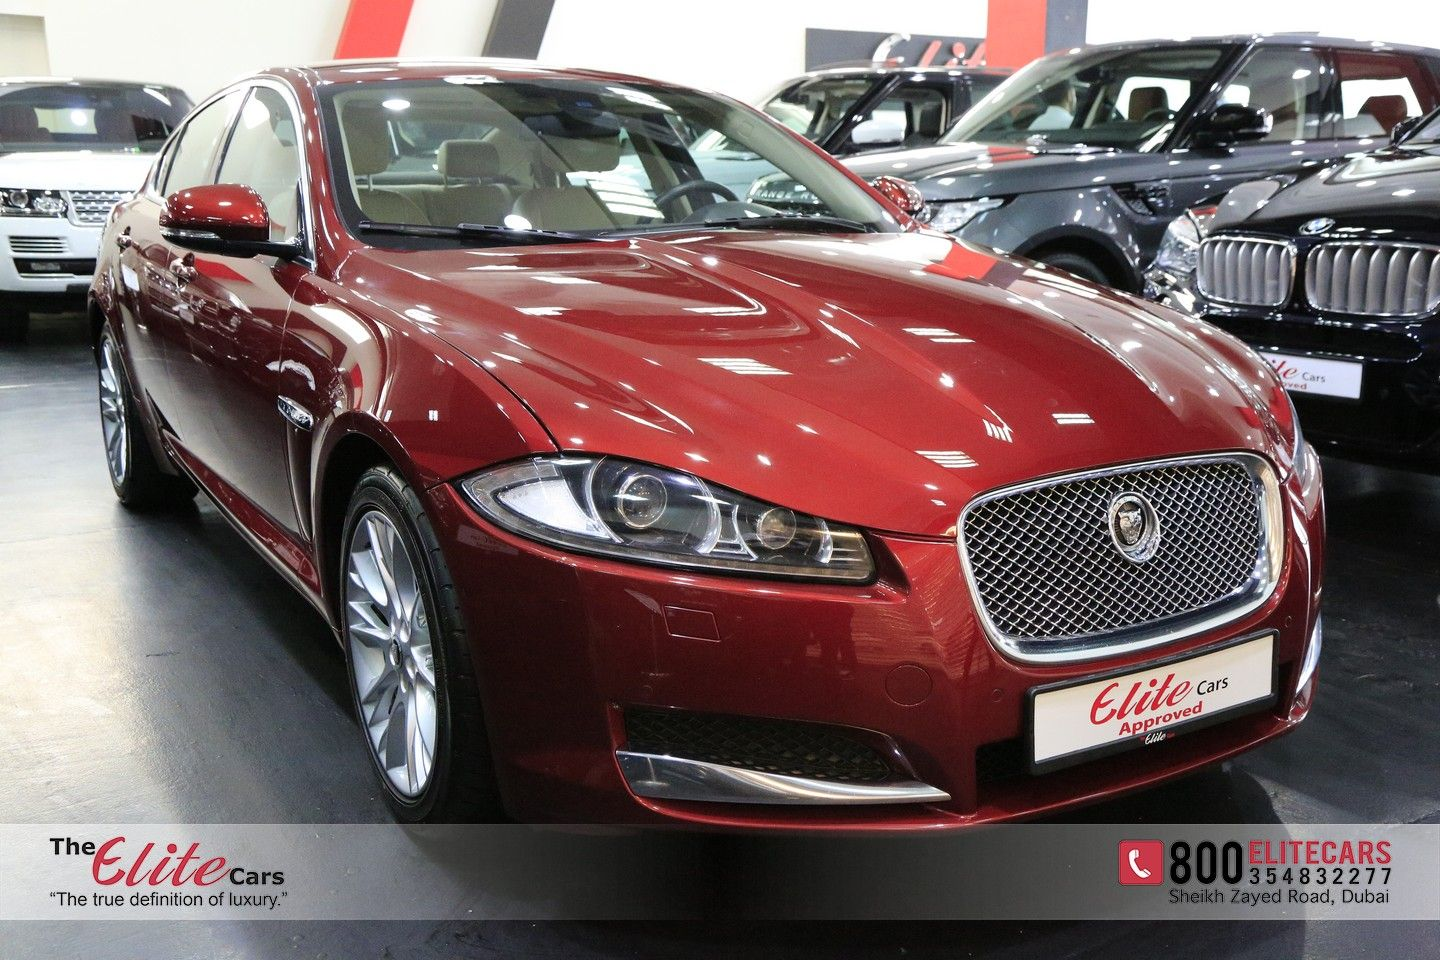 Jaguar Xf 2012 The Elite Cars For Pre Owned And Used Cars In